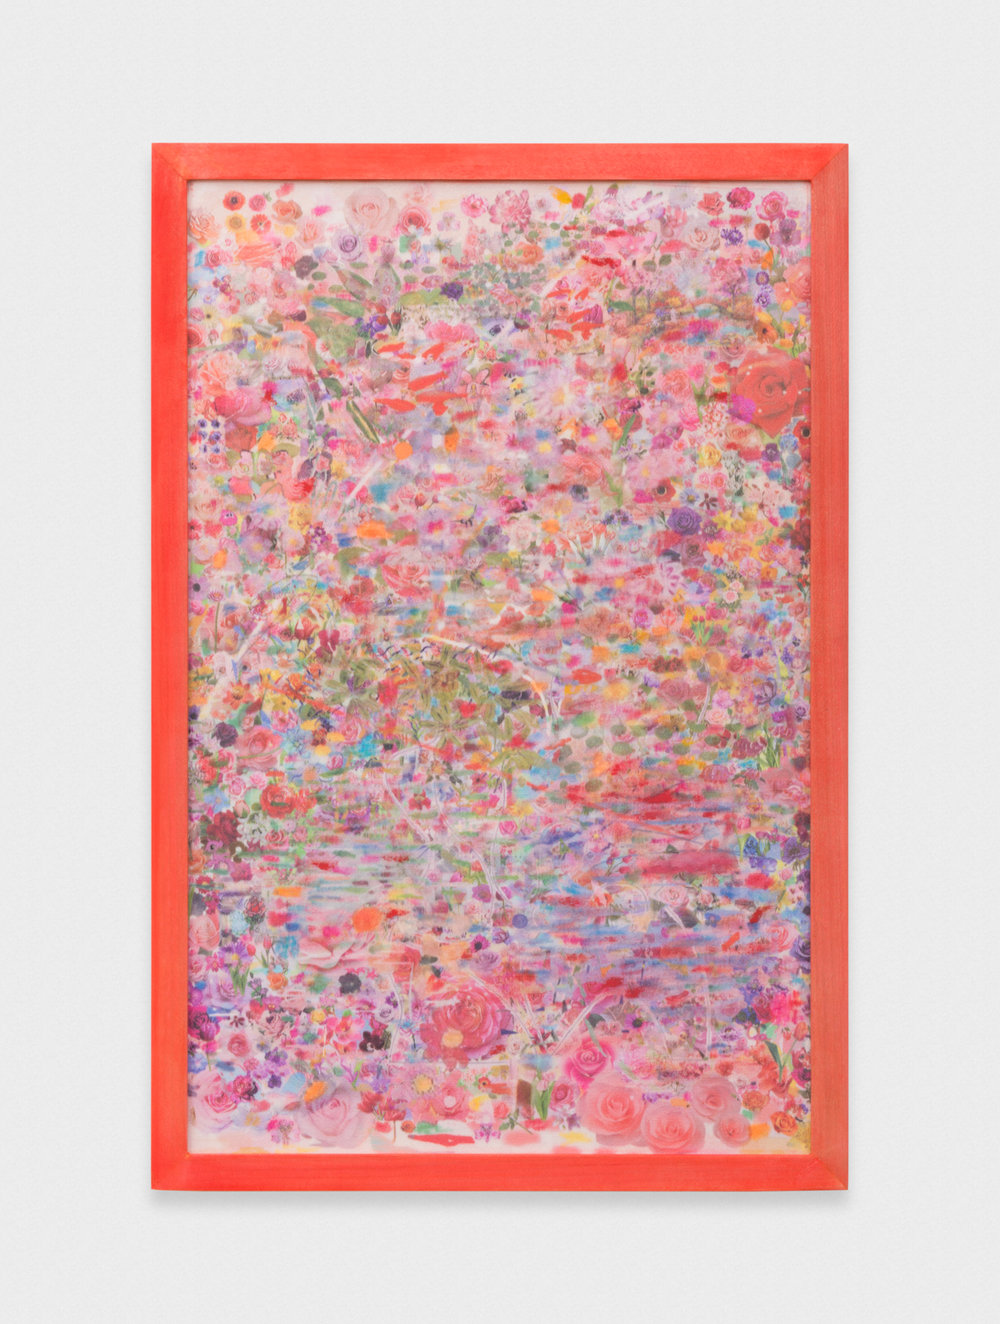 Michelle Rawlings  Untitled  2017 Oil, digital print on silk in artist frame 12 ¾h x 8 ⅓w in MRaw002